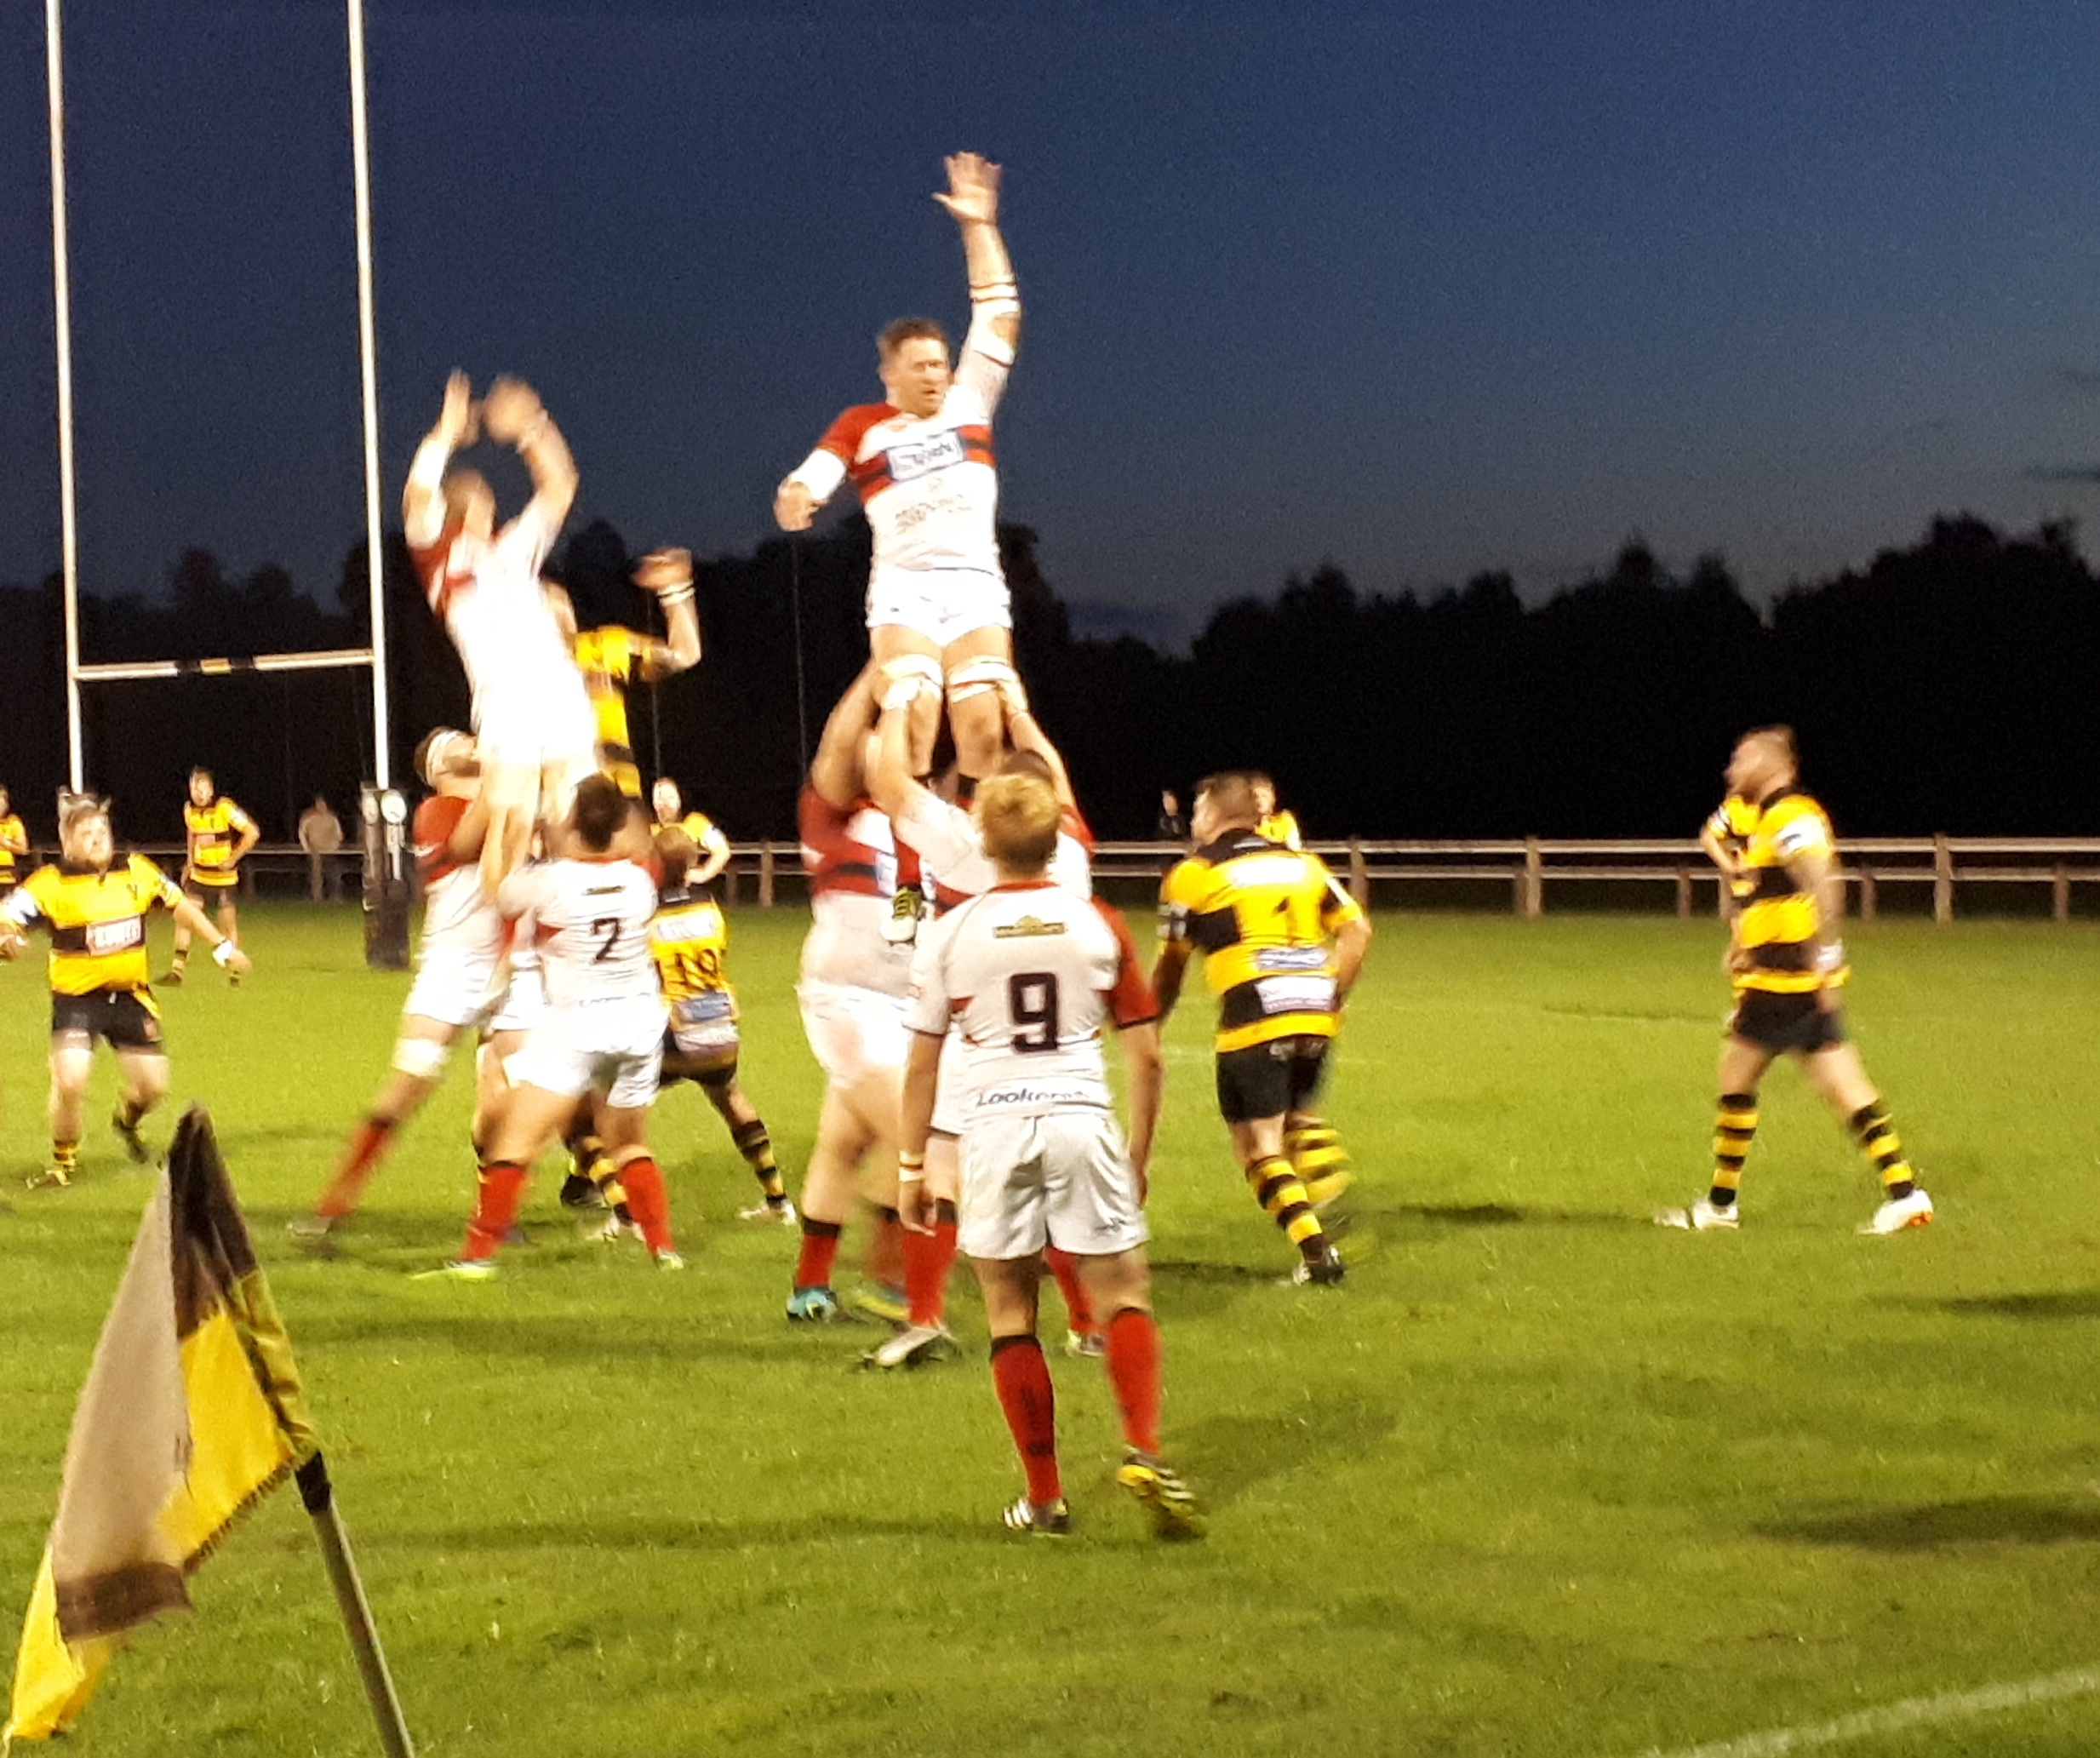 Friday night lights: Droitwich v Bromsgrove